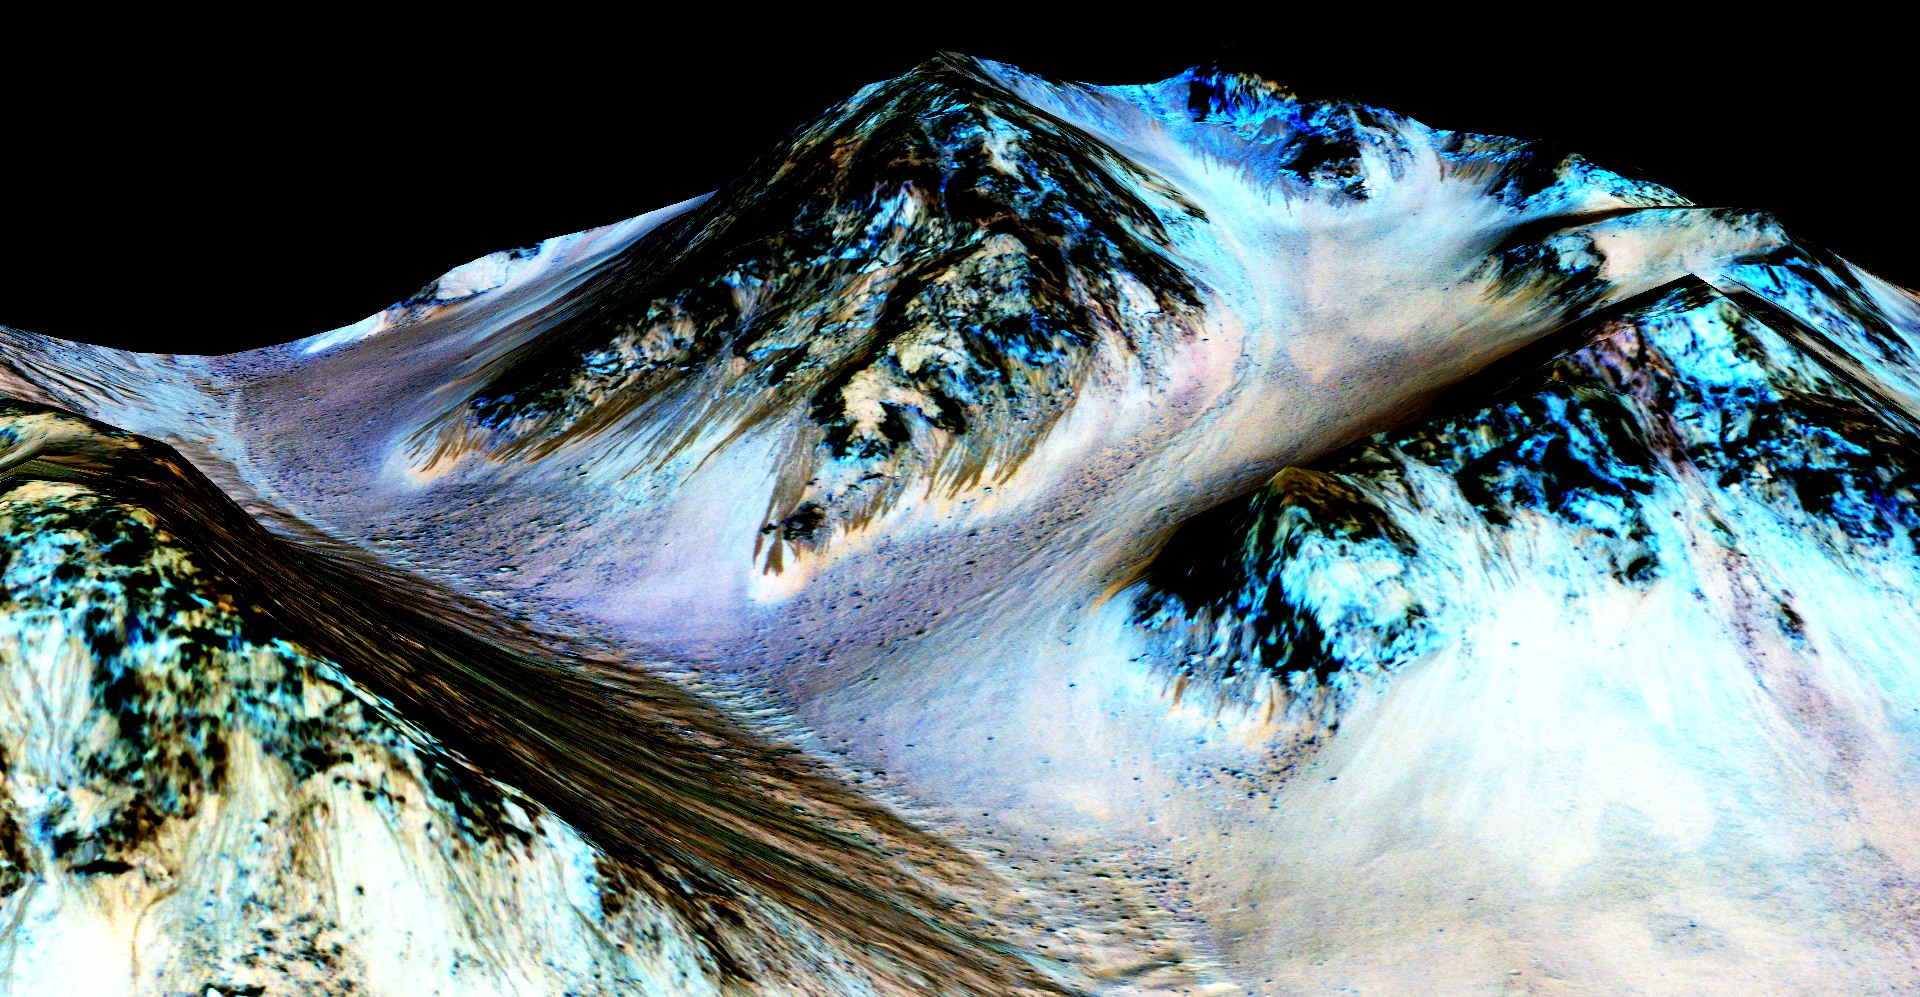 These dark, narrow, 100 meter-long streaks called recurring slope lineae flowing downhill on Mars are inferred to have been formed by contemporary flowing water. Recently, planetary scientists detected hydrated salts on these slopes at Hale crater, corroborating their original hypothesis that the streaks are indeed formed by liquid water. The blue color seen upslope of the dark streaks are thought not to be related to their formation, but instead are from the presence of the mineral pyroxene. Credit: NASA/JPL/University of Arizona